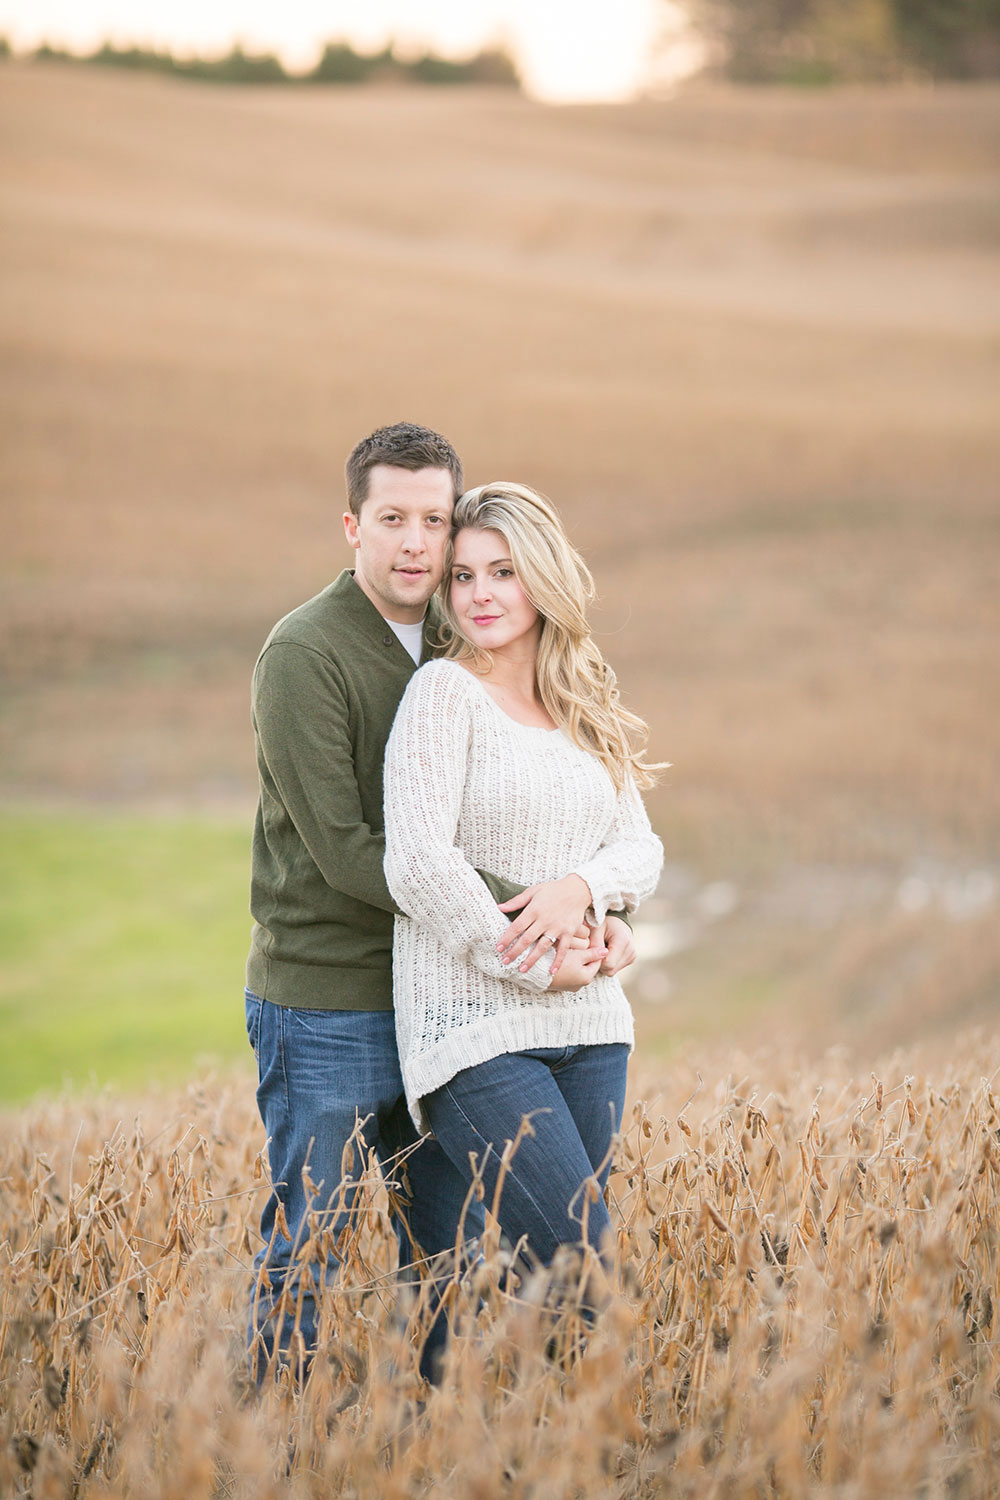 Albion-Hills-Conservation-Park-engagement-session-caledon-photo-by-philosophy-studios-eva-derrick-photography-029.jpg